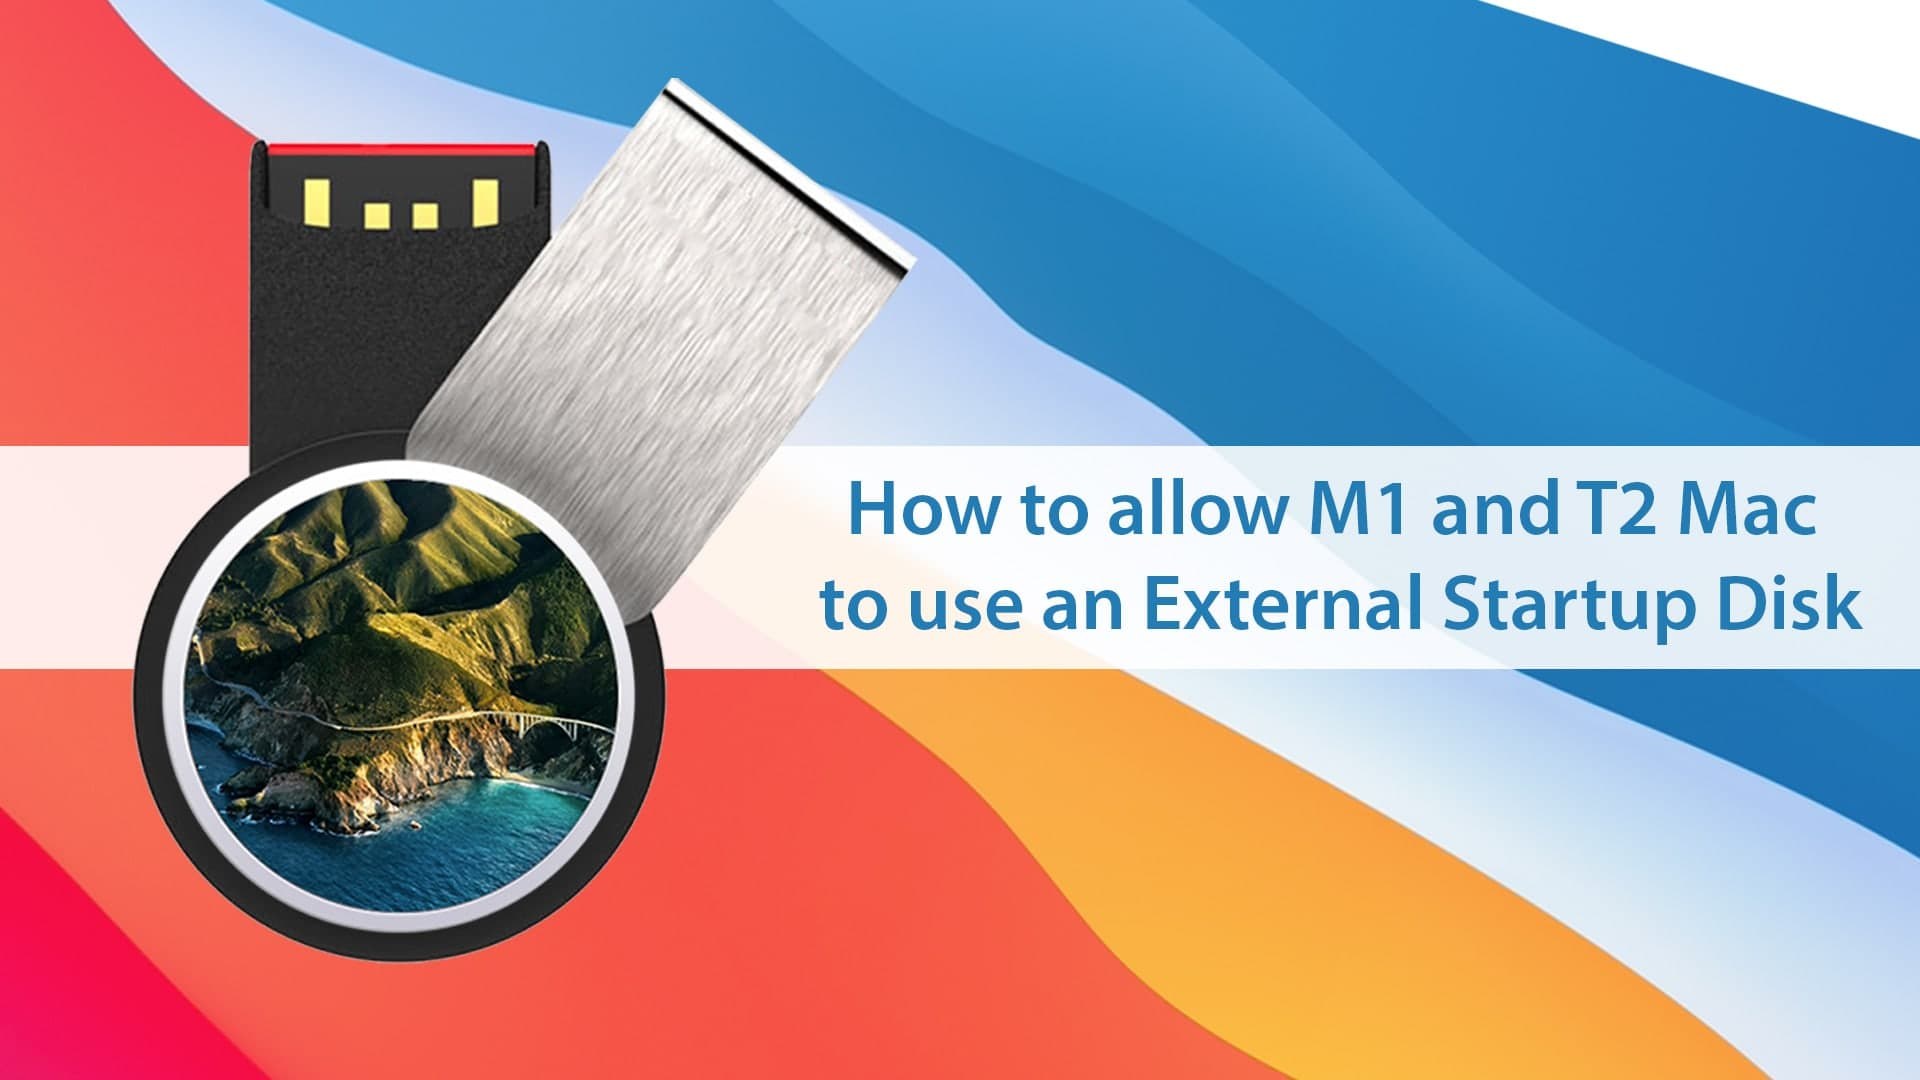 How to allow M1 and T2 Mac to use an External Startup Disk